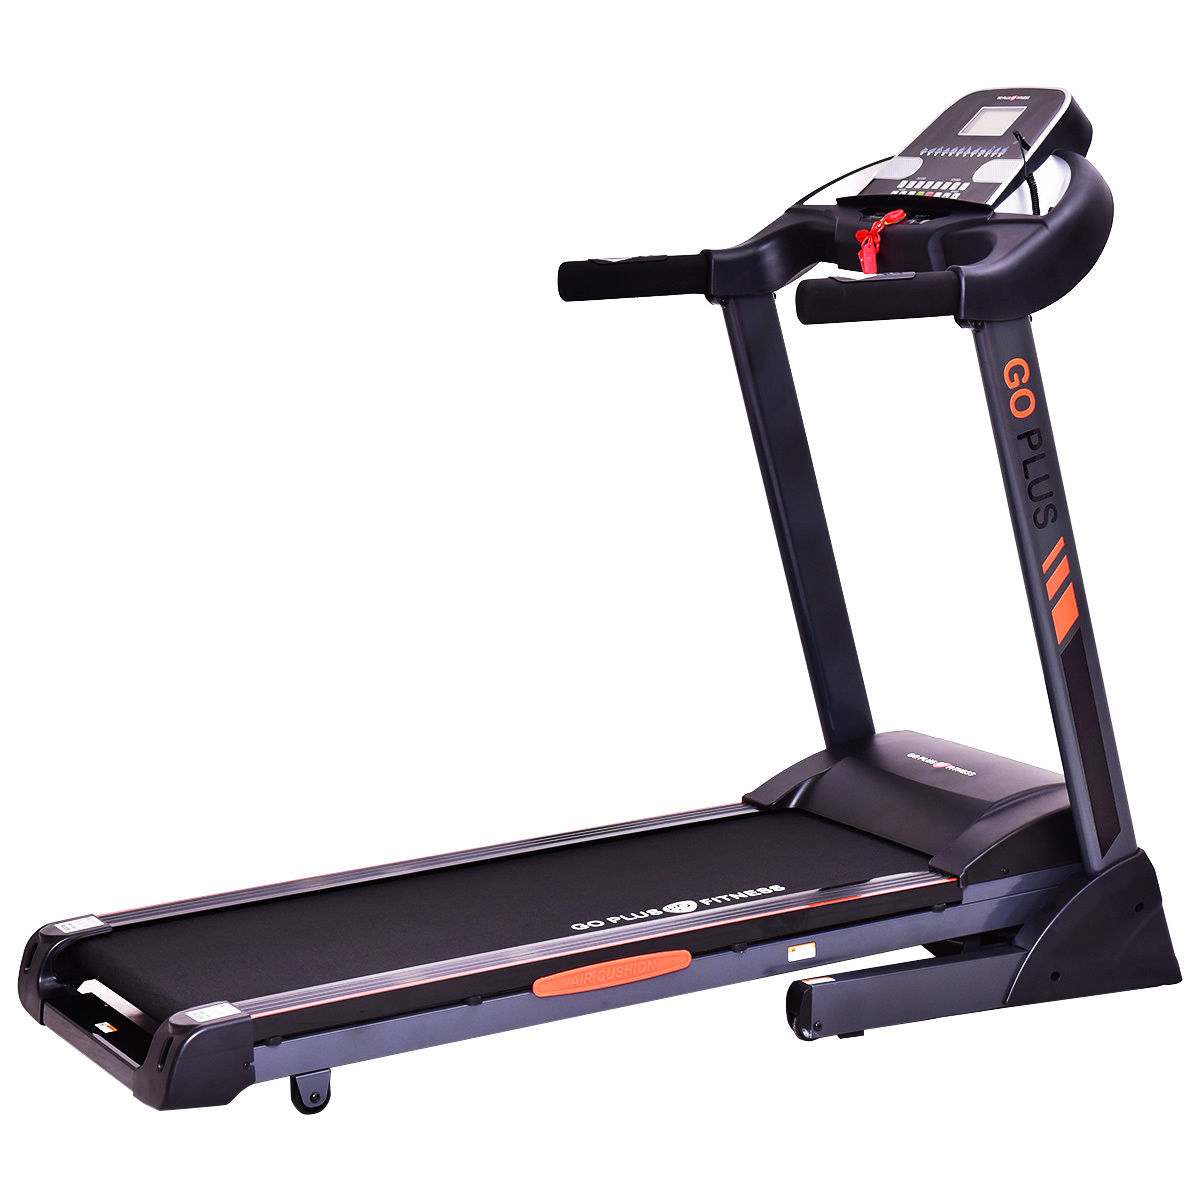 Costway 2.5HP Folding Treadmill Electric Support Motorized Power Running Fitness Machine